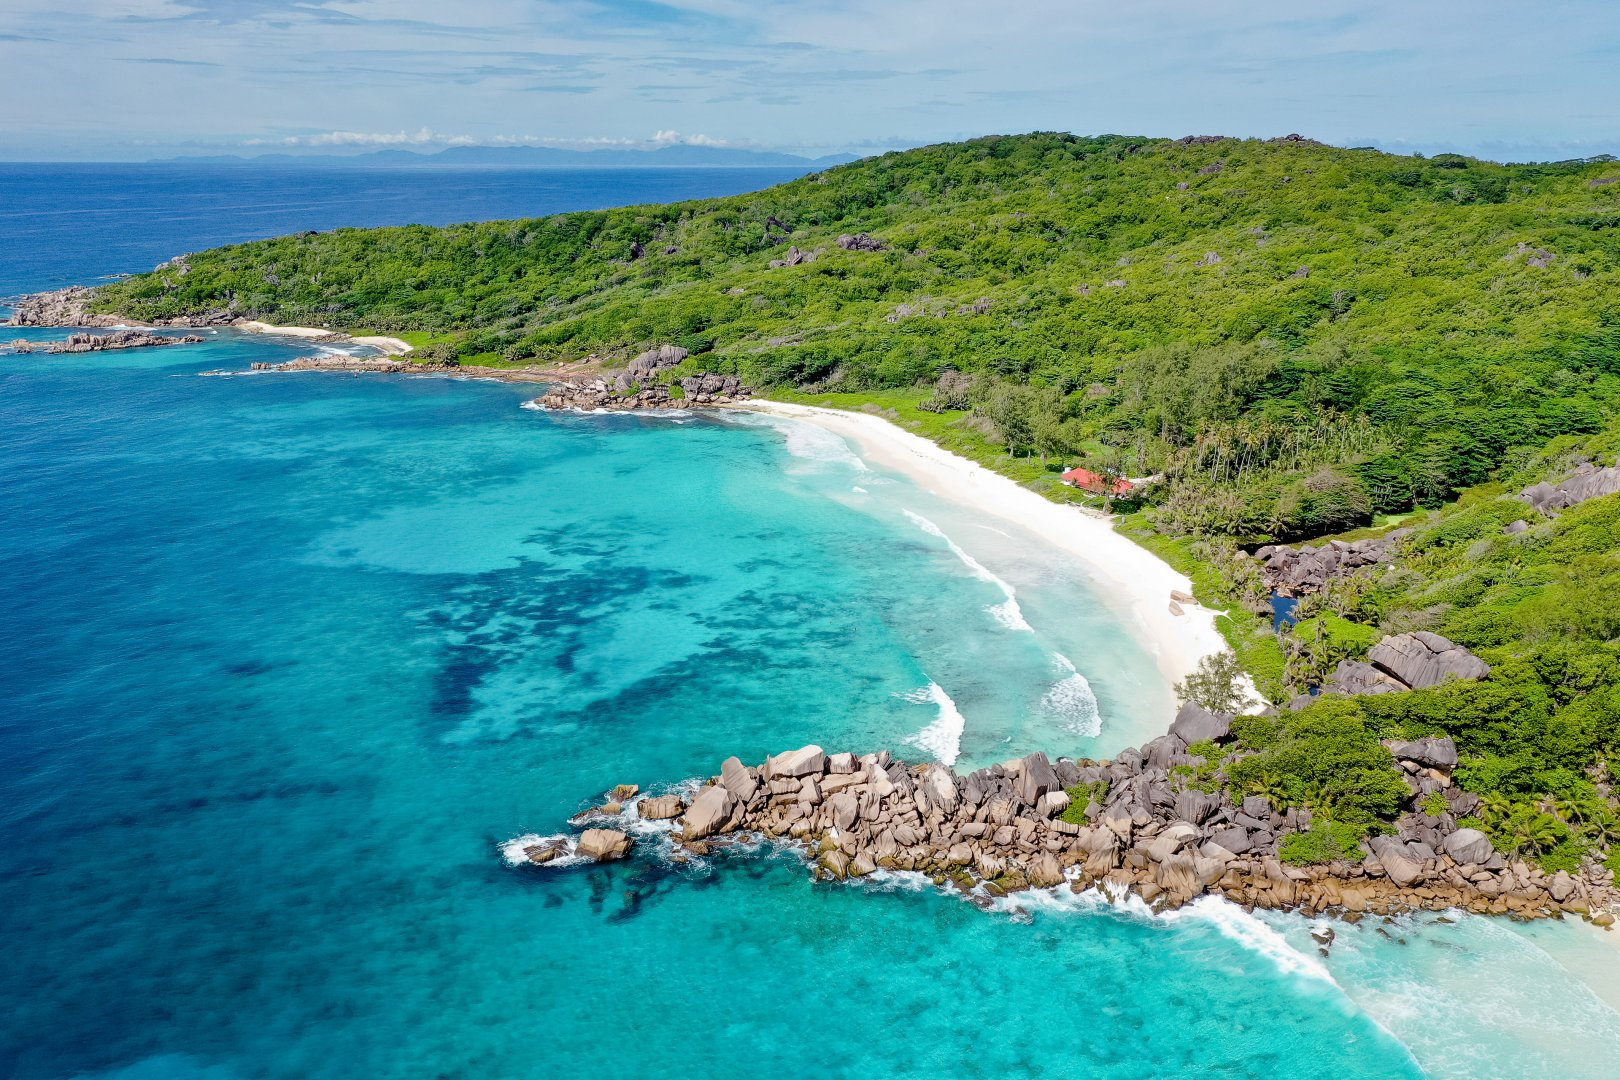 Body of water Coast Coastal and oceanic landforms Sea Bight Natural landscape Promontory Headland Ocean Bay Shore Cove Tropics Inlet Water resources Cape Water Beach Peninsula Caribbean Aerial photography Vacation Lagoon Tourism Klippe Watercourse Islet Landscape Cliff Island